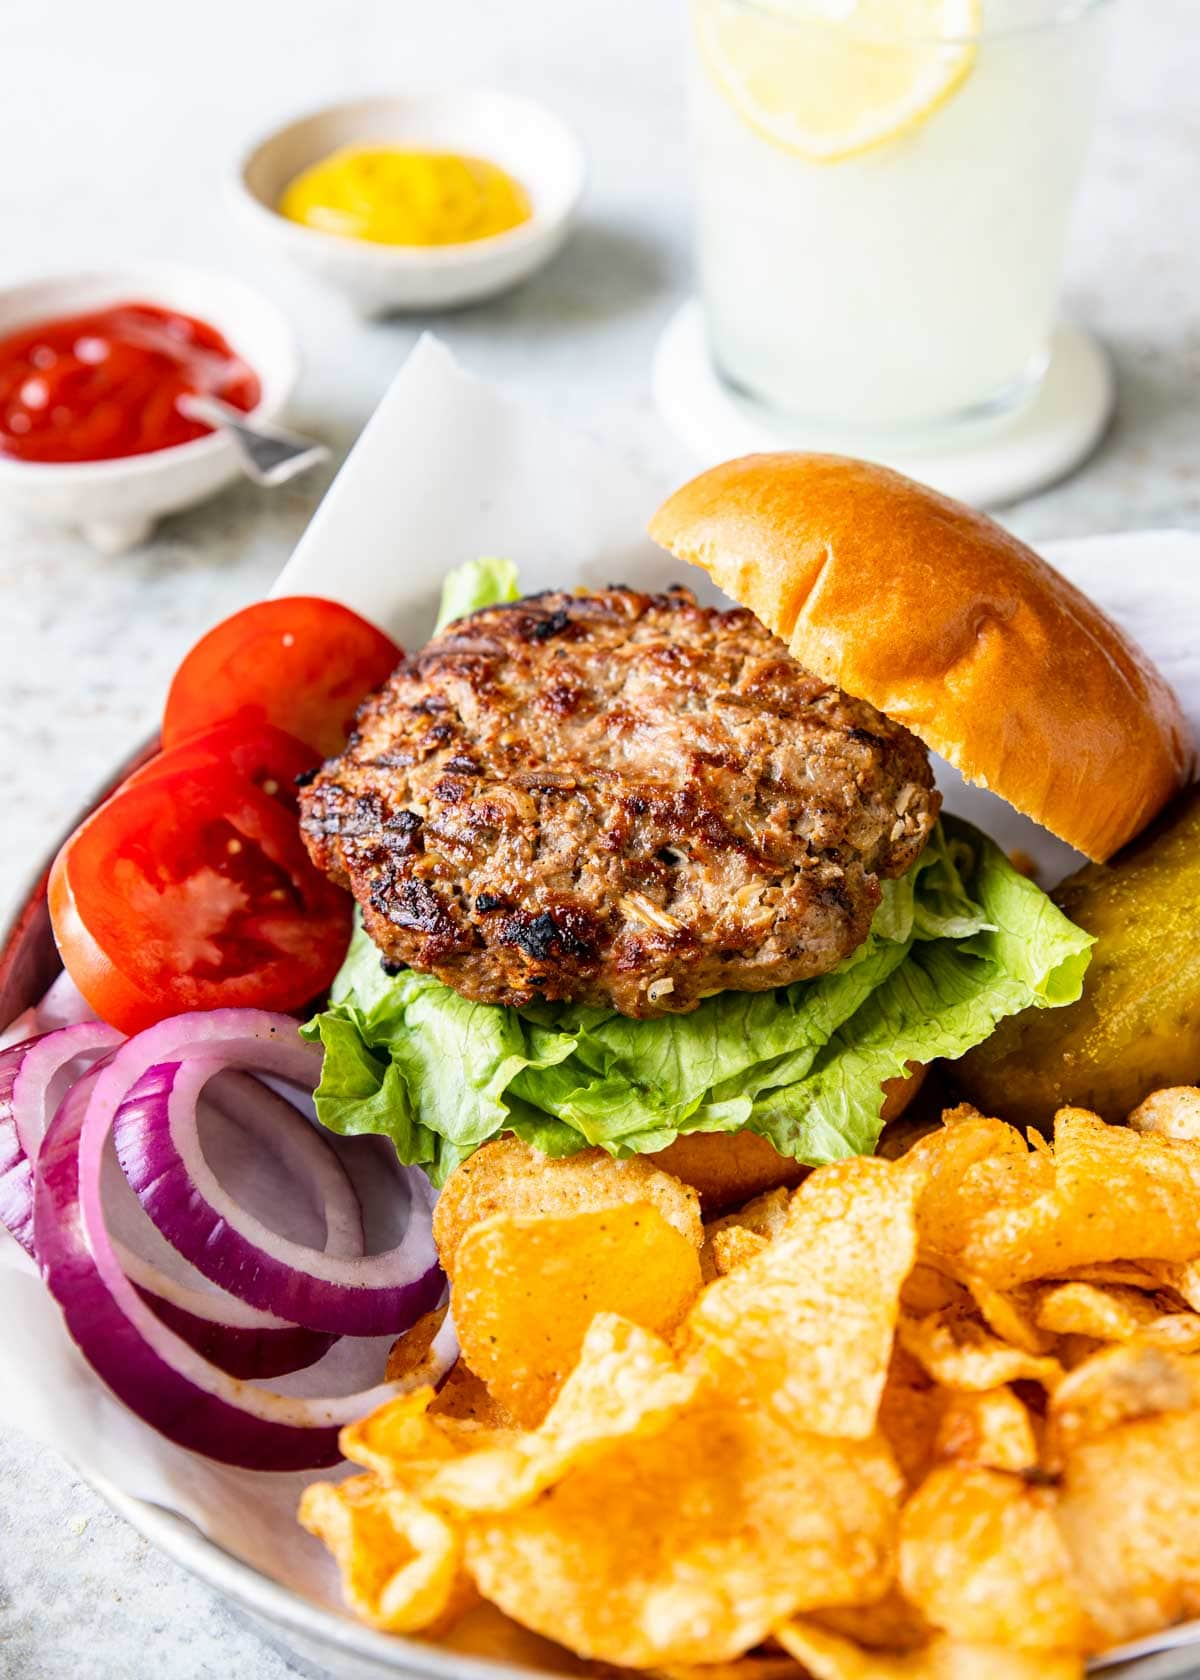 turkey burger on a bun with onions and tomatoes to the side